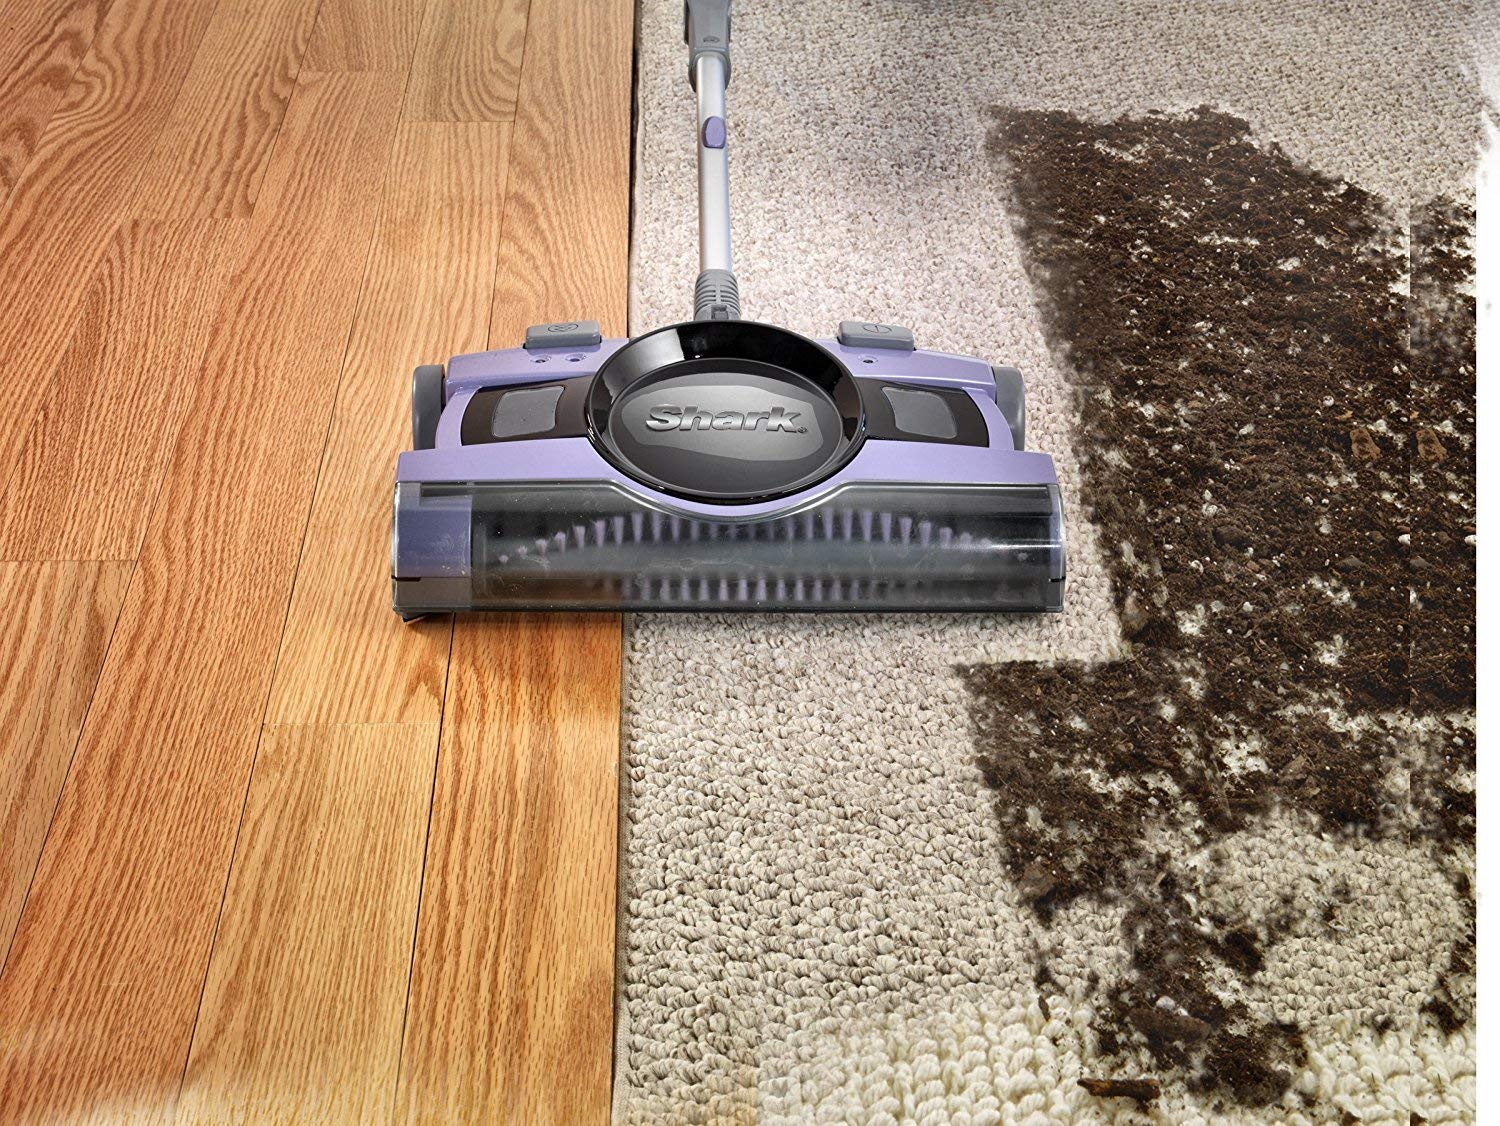 and Two-Speed Brush Roll Shark Ultra-Light Cordless 13-Inch Rechargeable Floor /& Carpet Sweeper with BackSaver Handle V2950 Renewed Motorized Brushroll